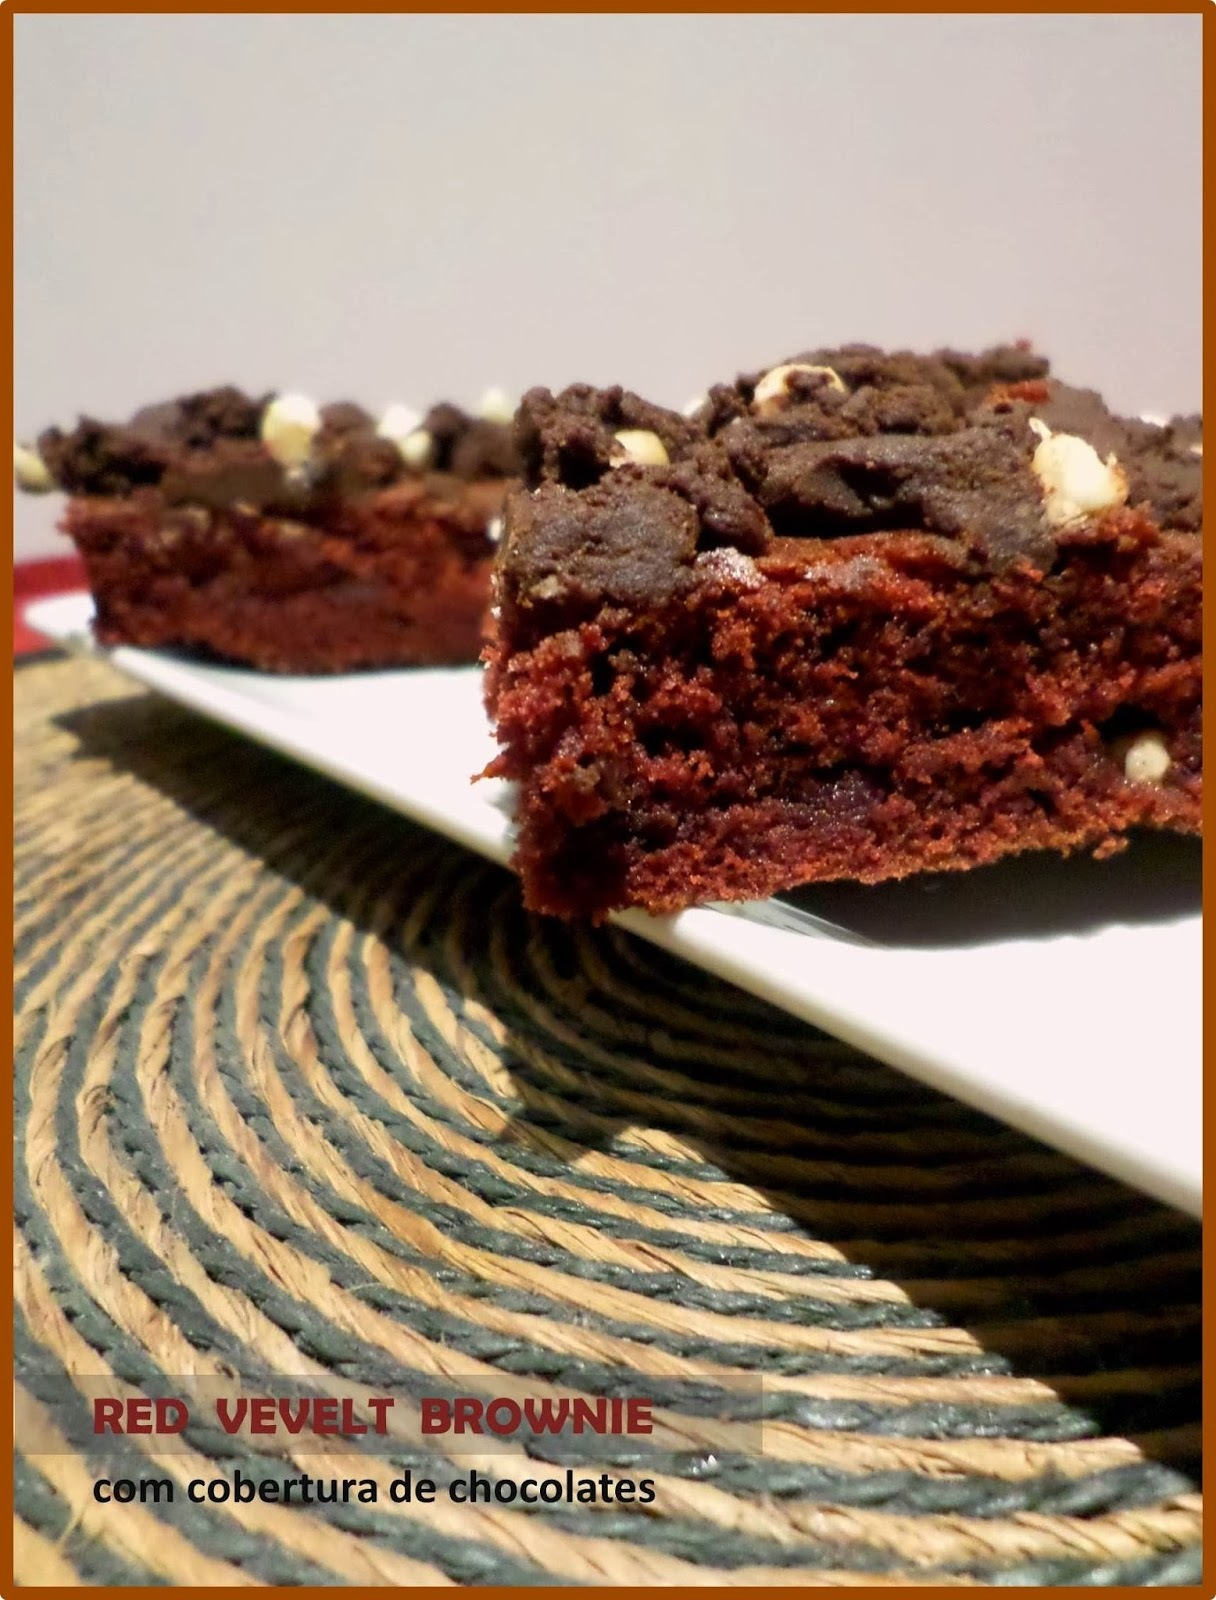 |comer|      Red Velvet Brownie com cobertura de chocolates